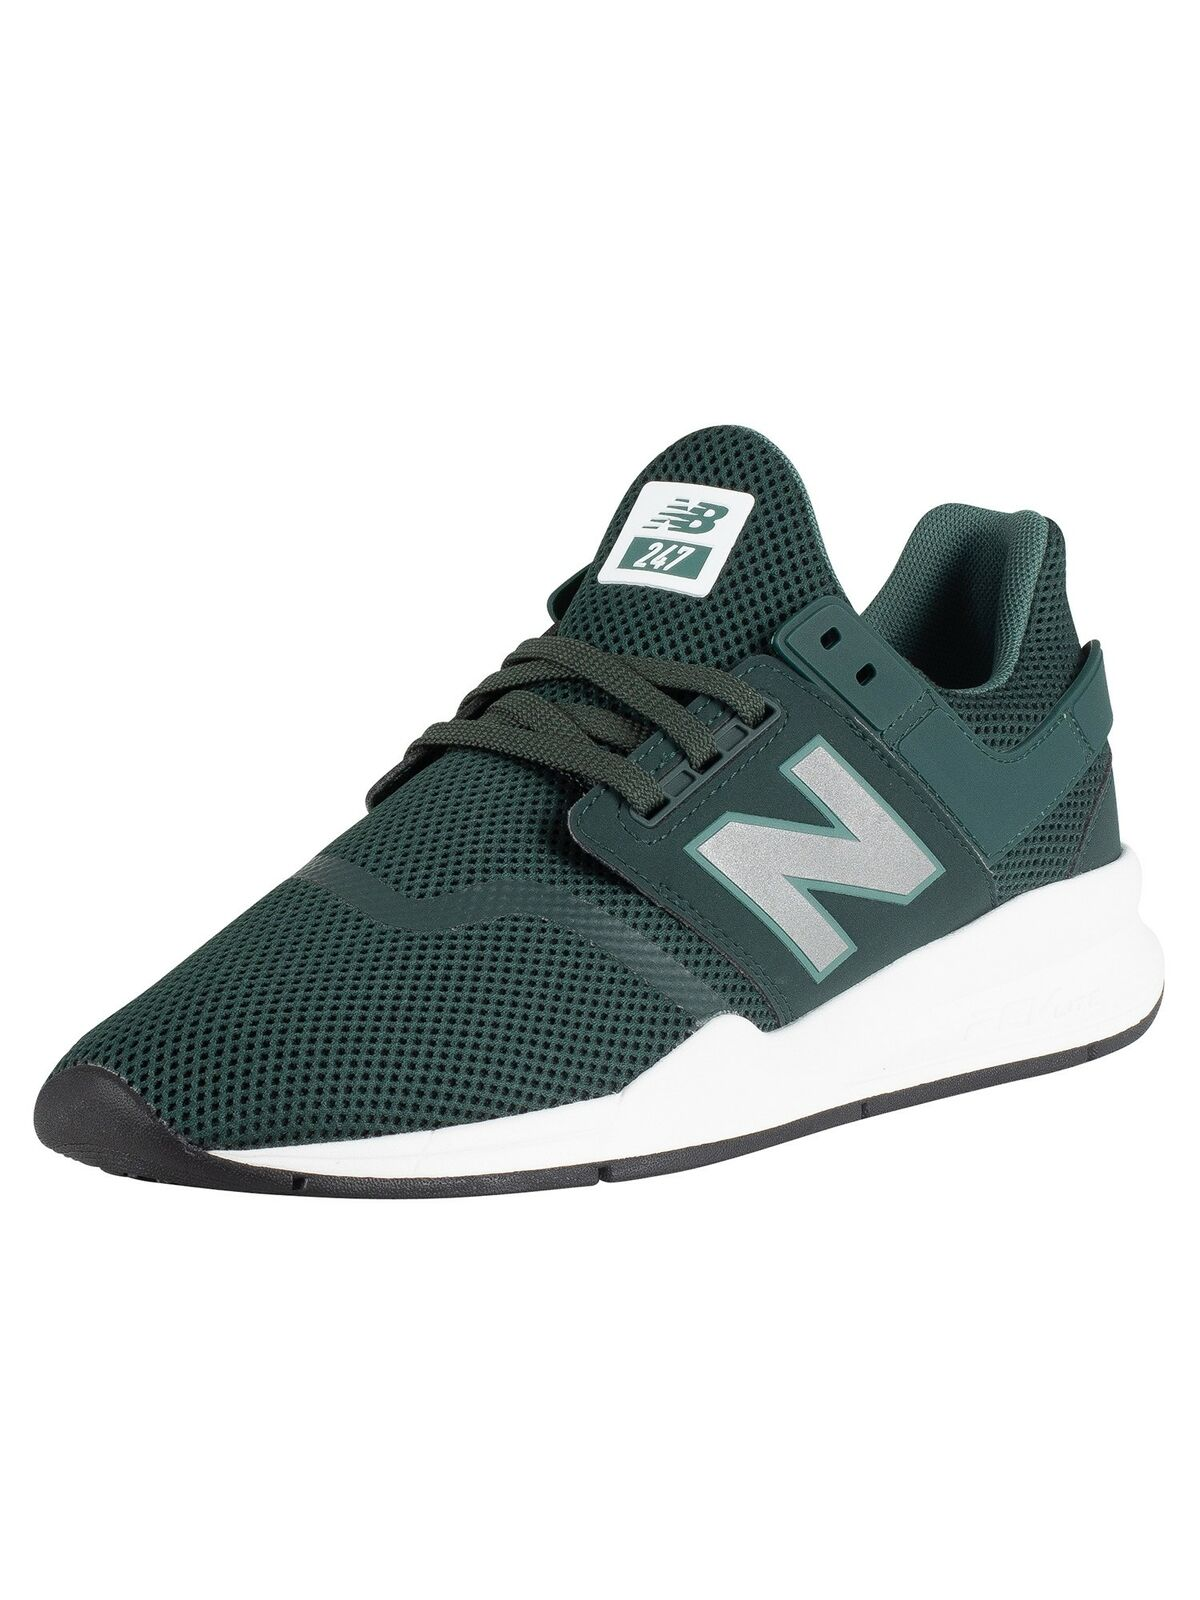 New Balance Men's 247 Mesh Trainers, Green